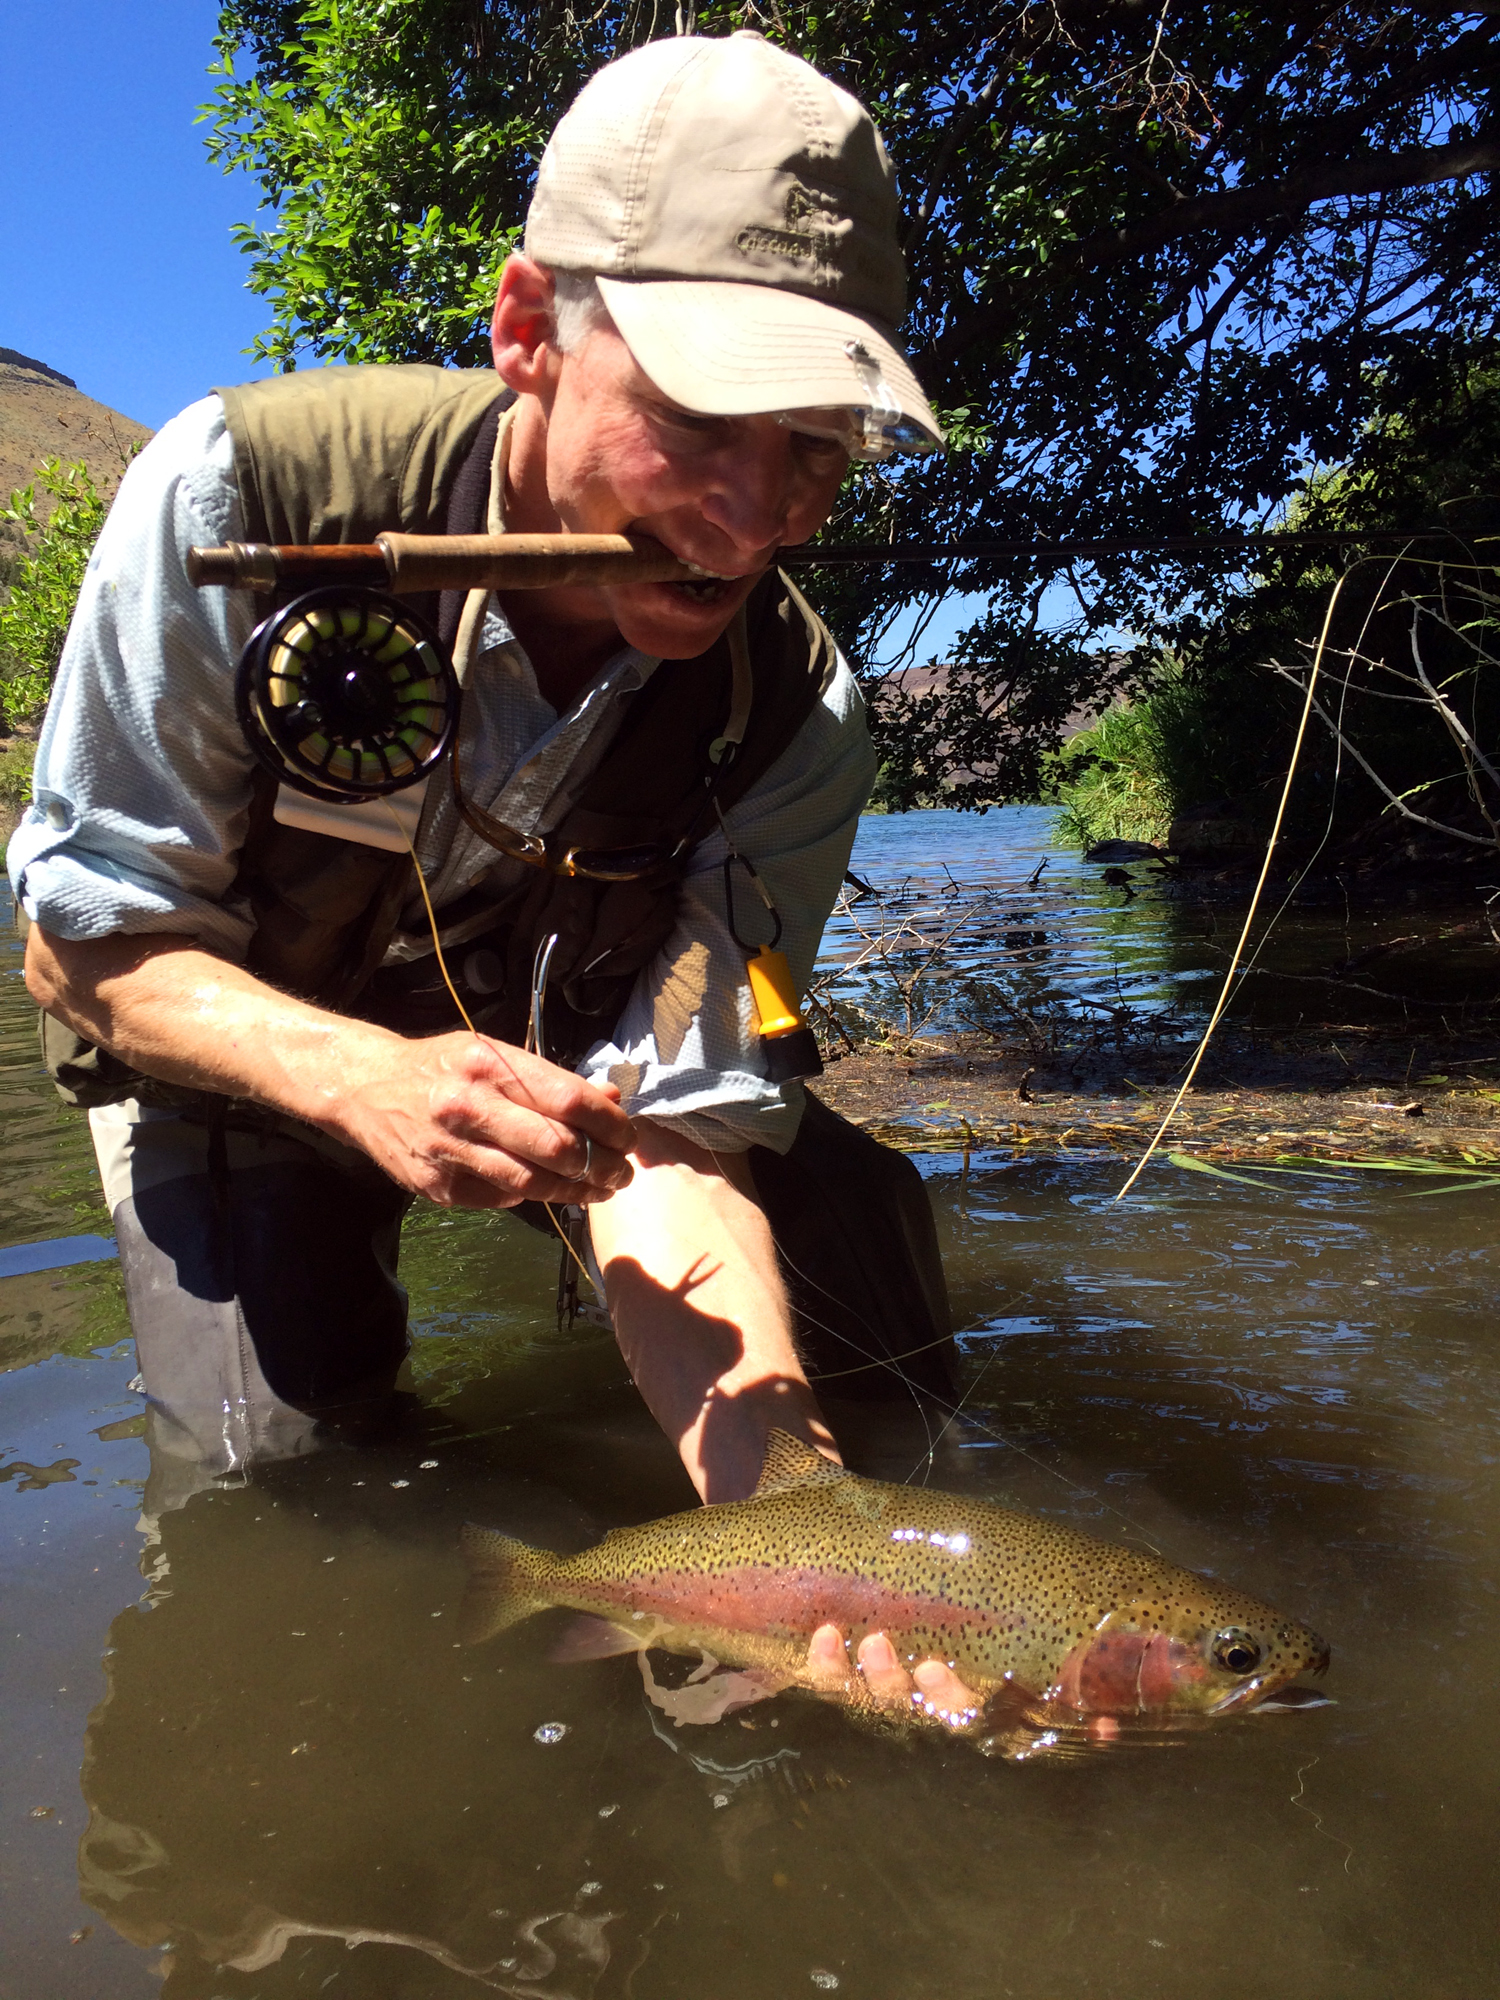 A stunning trout we found hammering caddis in some slack waterunder a tree... we put in some blood sweat and tears for this fish!